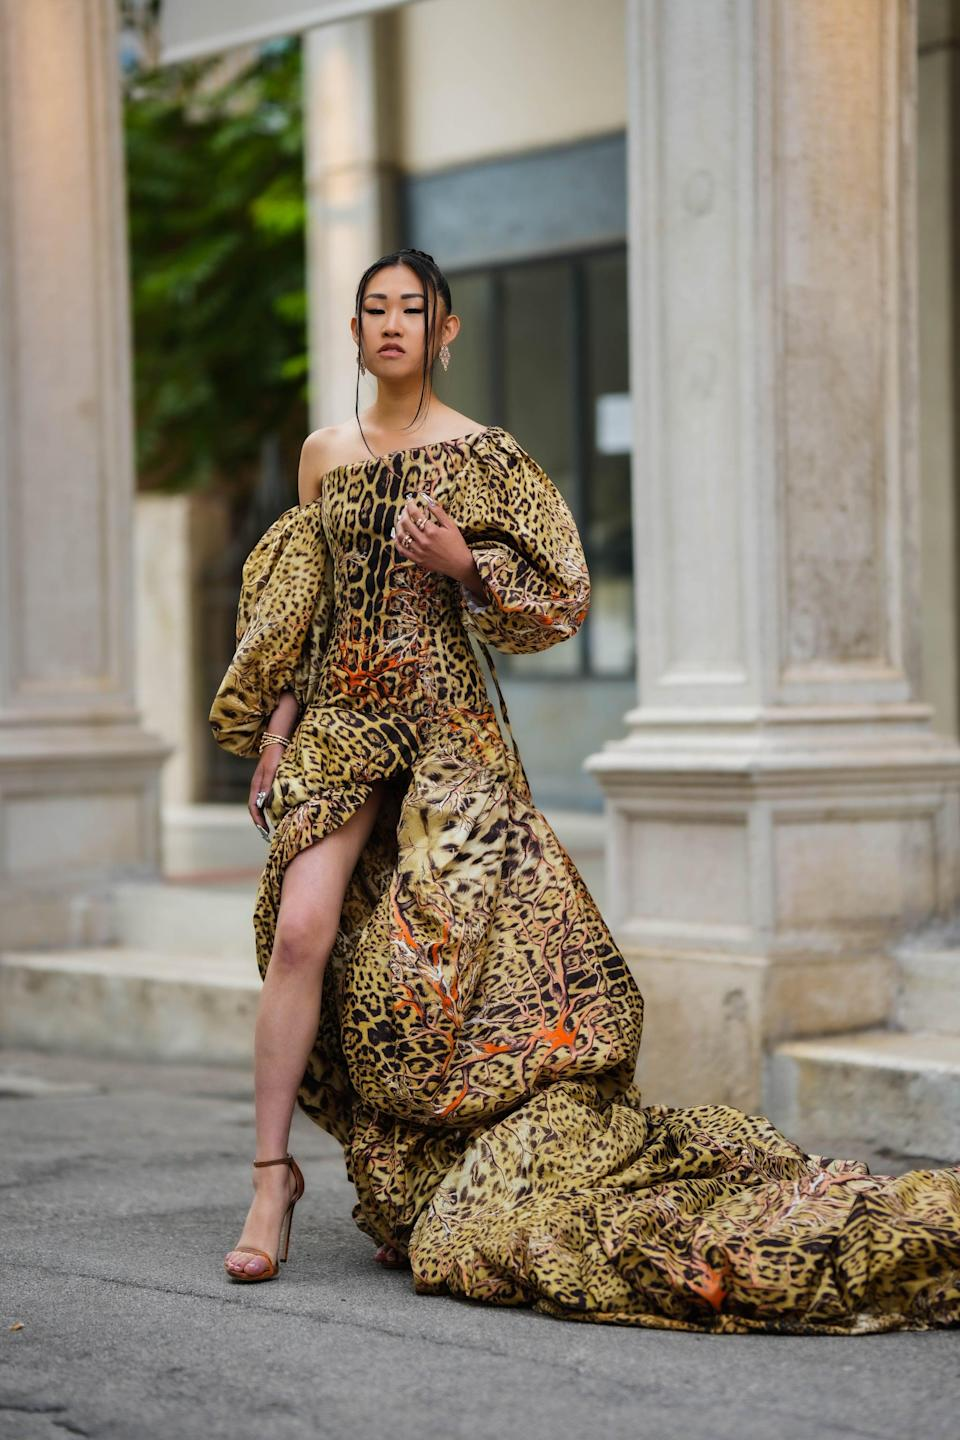 <p>Posting a photo of Jaime Xie wearing Spring 2005 Roberto Cavalli to his Instagram, the stylist called the <b>Bling Empire</b> star the Queen of Archive. It looks like she's found herself in the right hands with Roach, who - we'll just say it - is the King of Archive.</p>